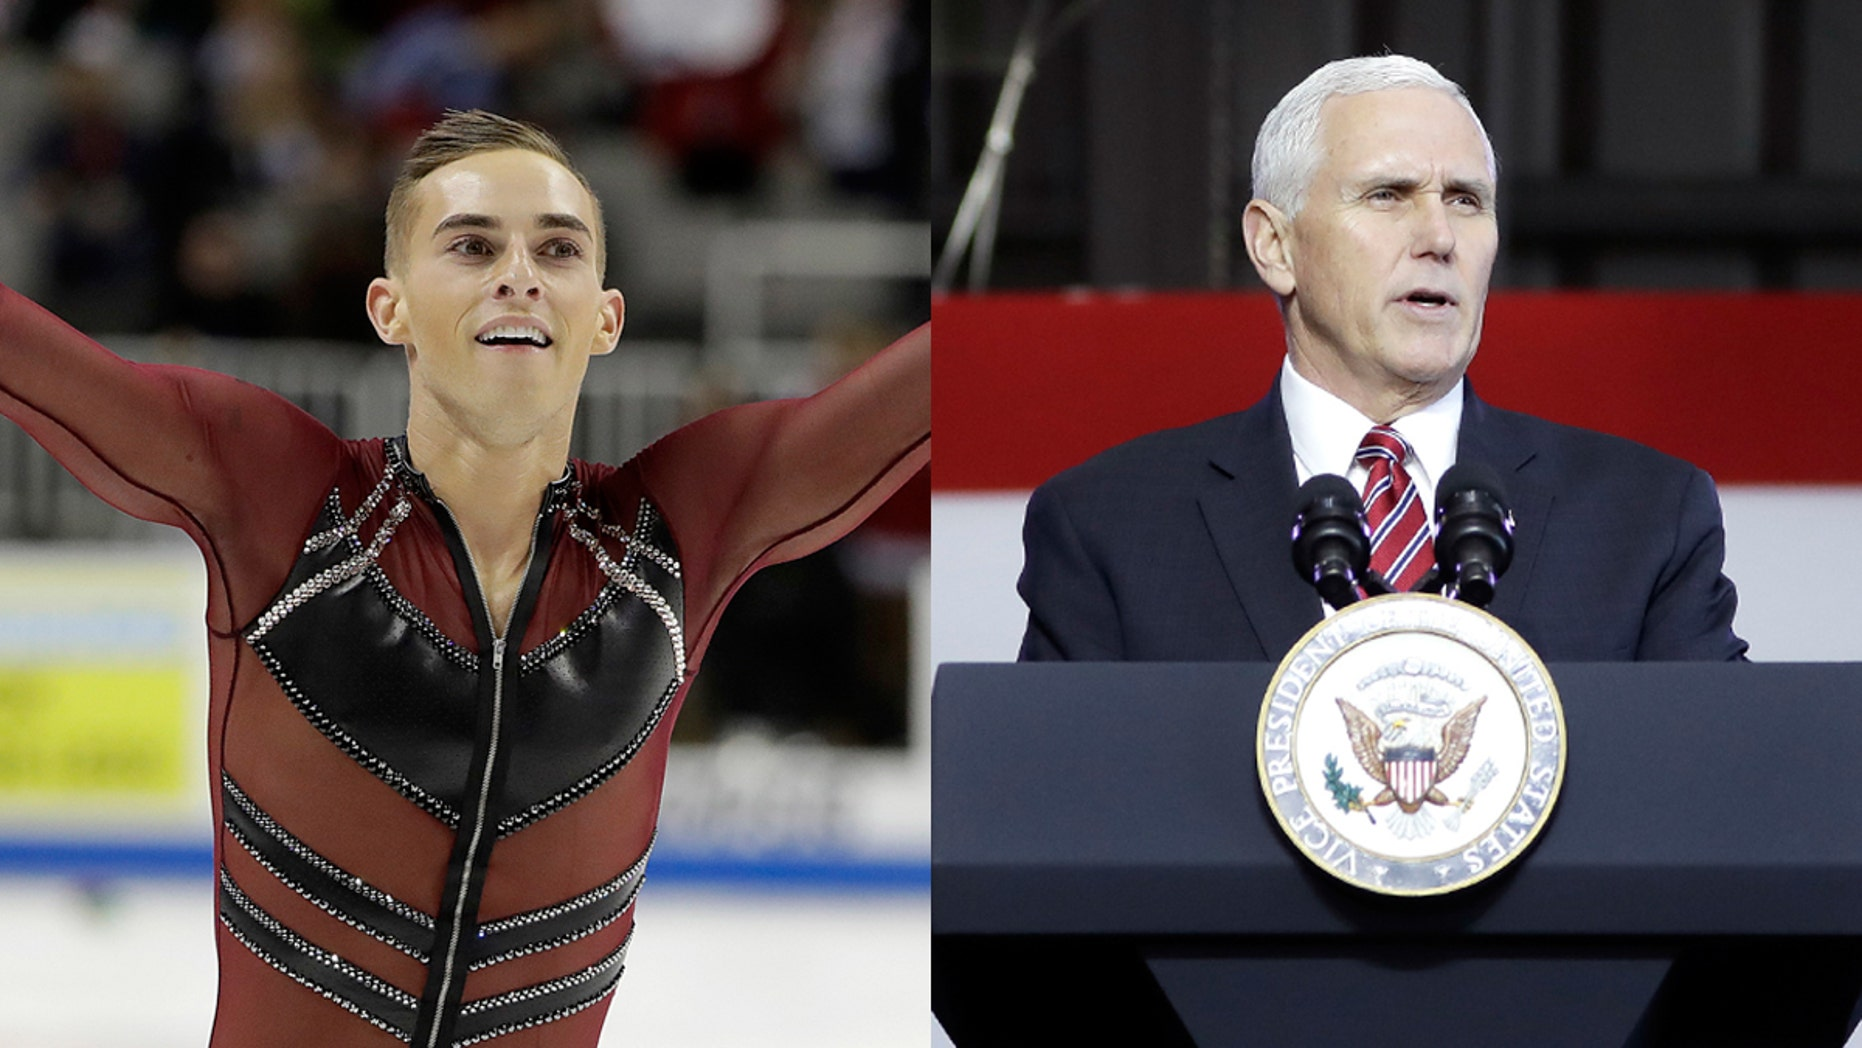 US Olympic figure skater Adam Rippon reportedly shot down the chance to meet with Vice President Pence, but Pence still cheered Rippon on Twitter Wednesday night.